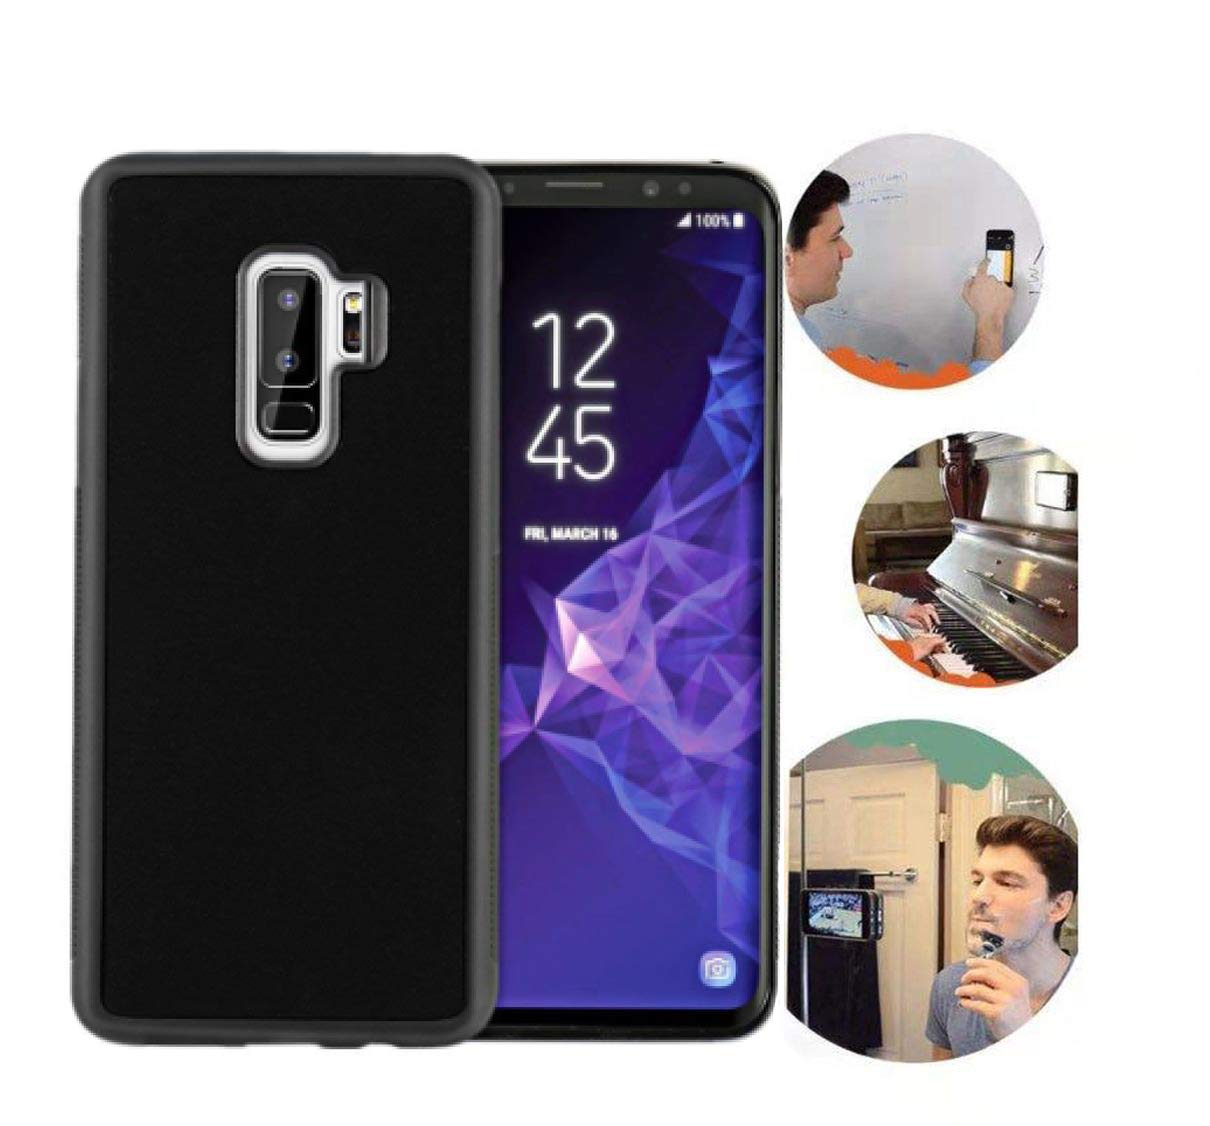 Wingcases for Samsung Galaxy S9 Plus Case, Anti Gravity Black Case Magic Nano Sticky Case for Galaxy S9 Plus 6.2 inch Suction Stick on The Wall Selfie ...